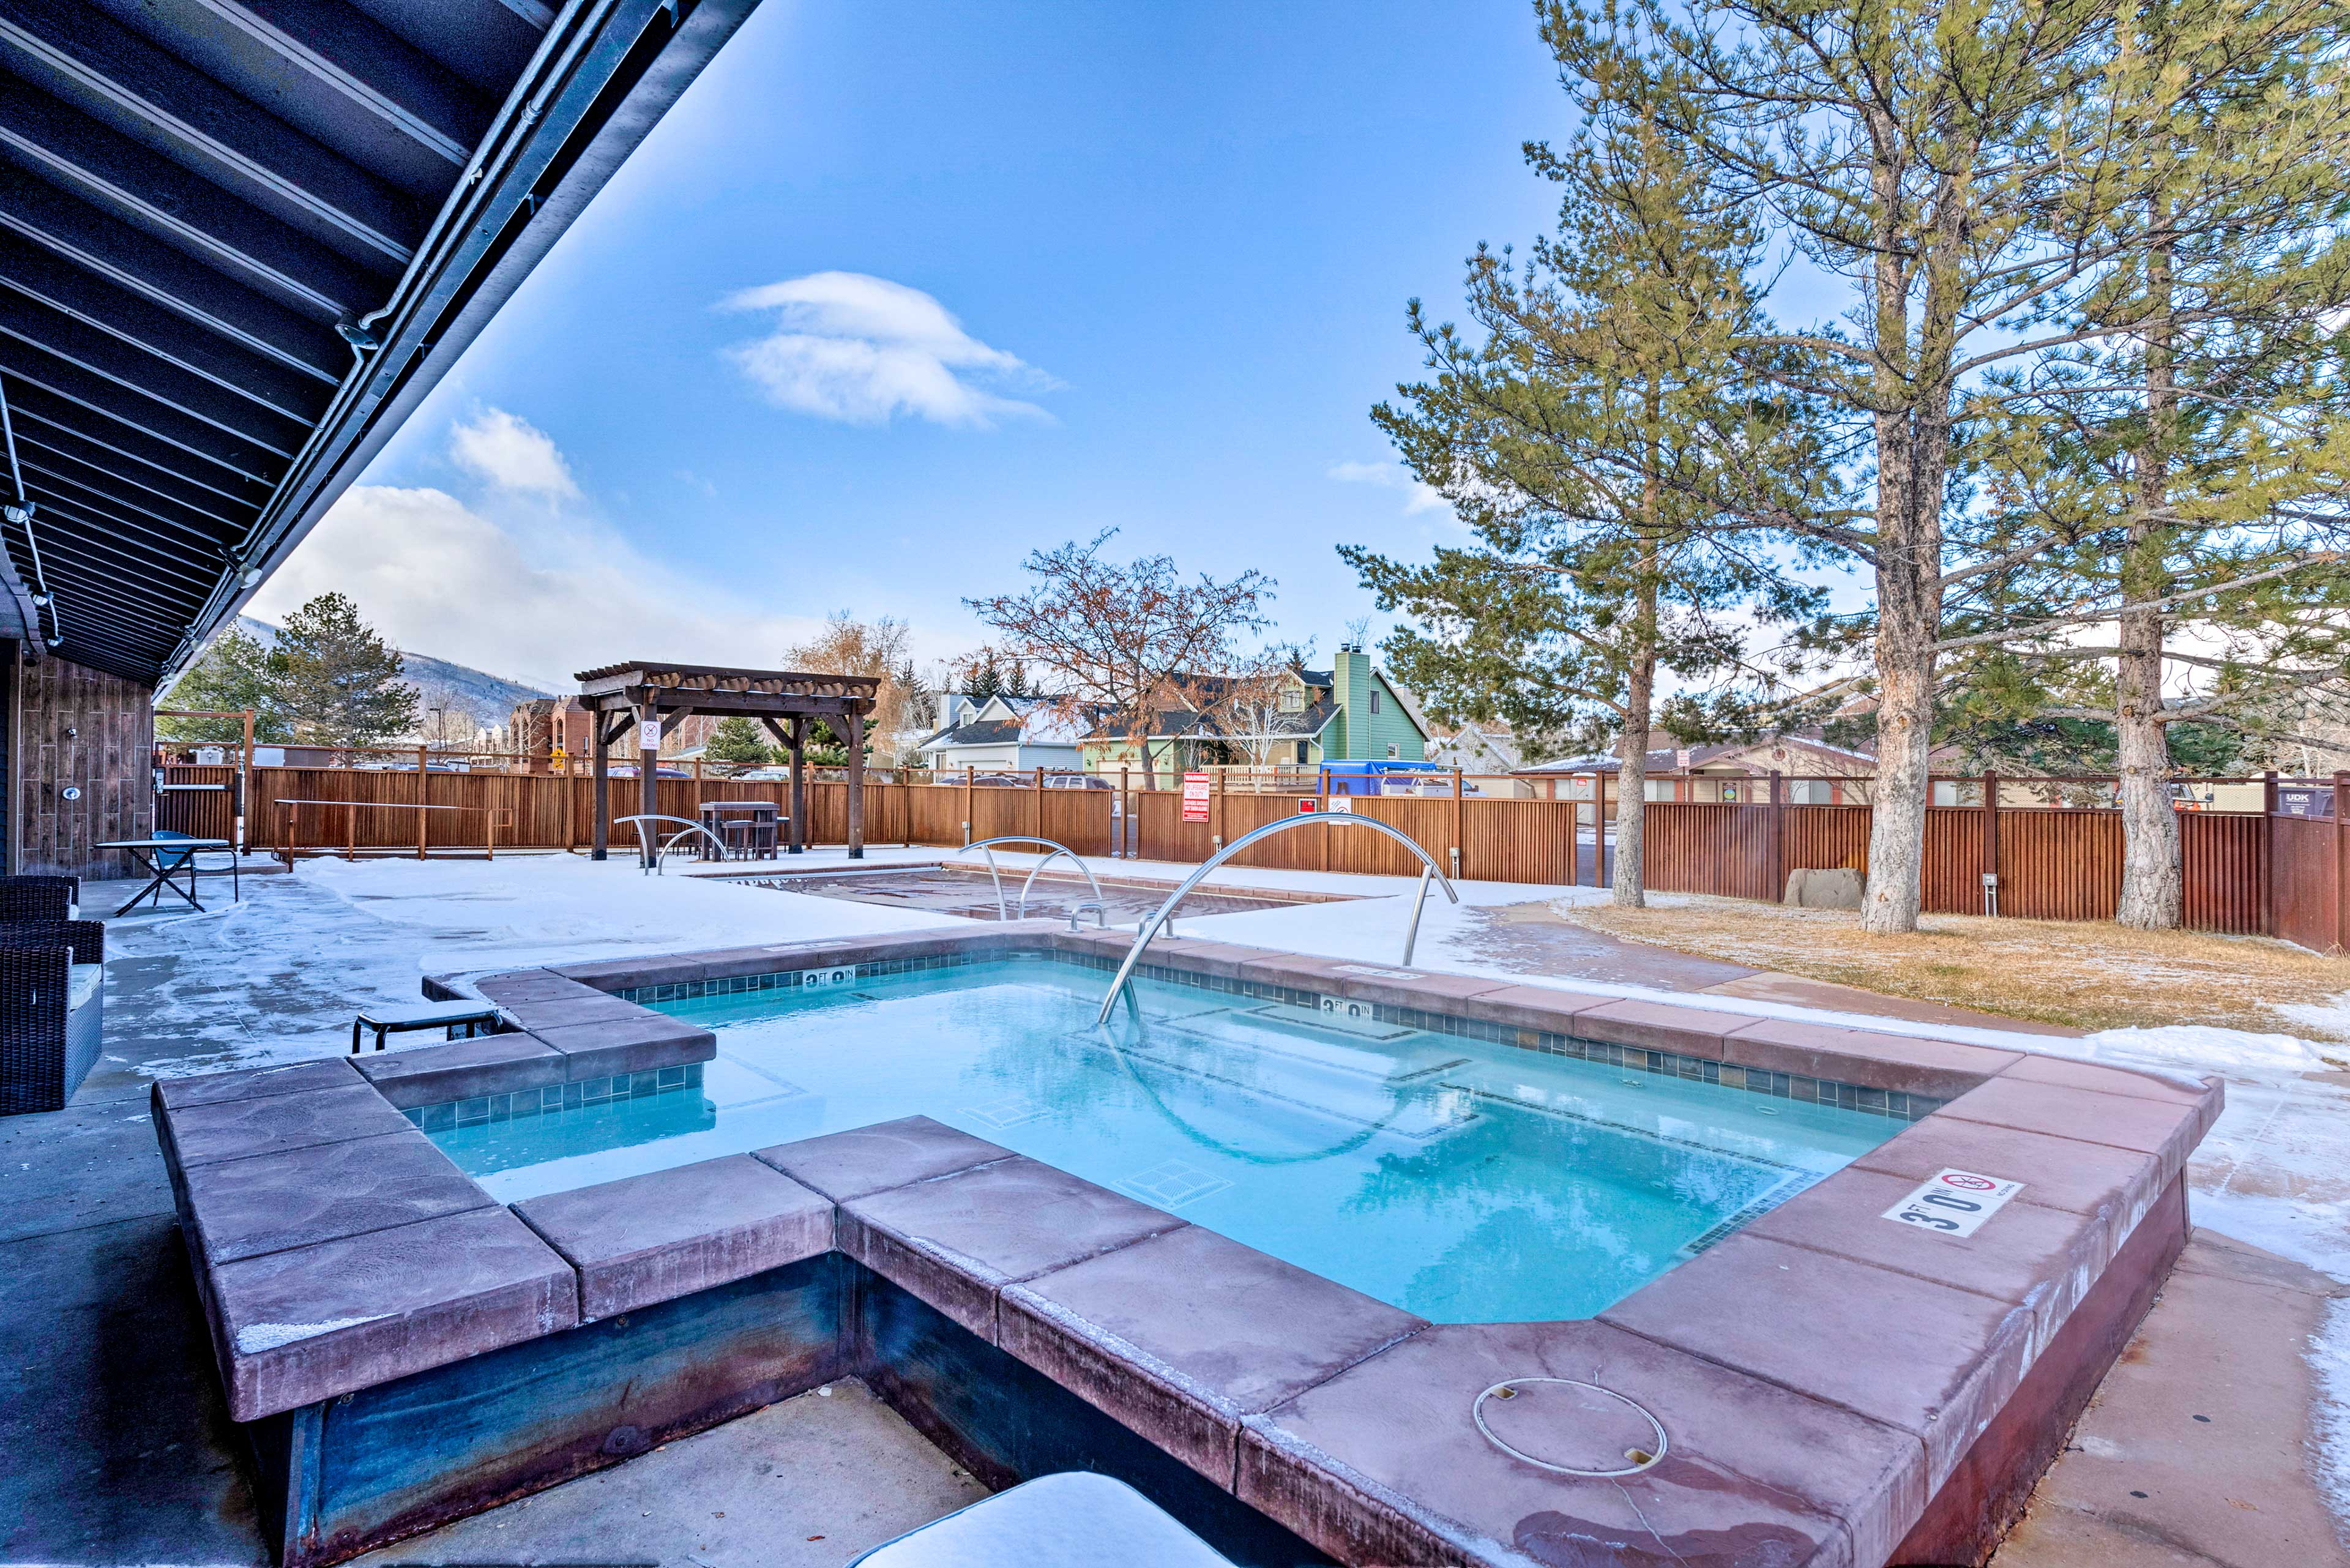 Your group of 4 will love the amenities including pools and hot tubs.